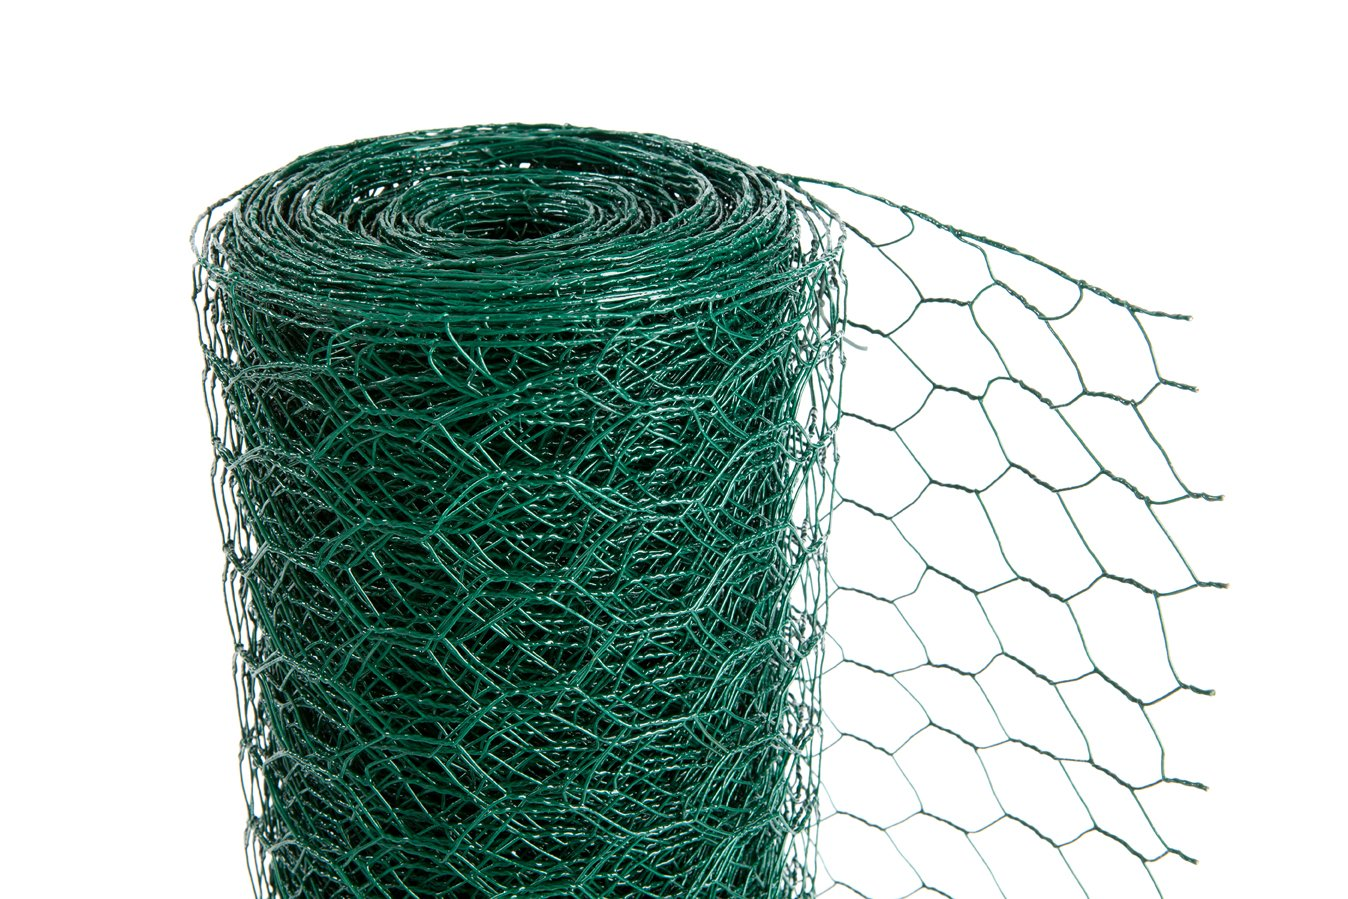 Easipet PVC Green chicken Wire 50mm x 600mm high x 25m (535)